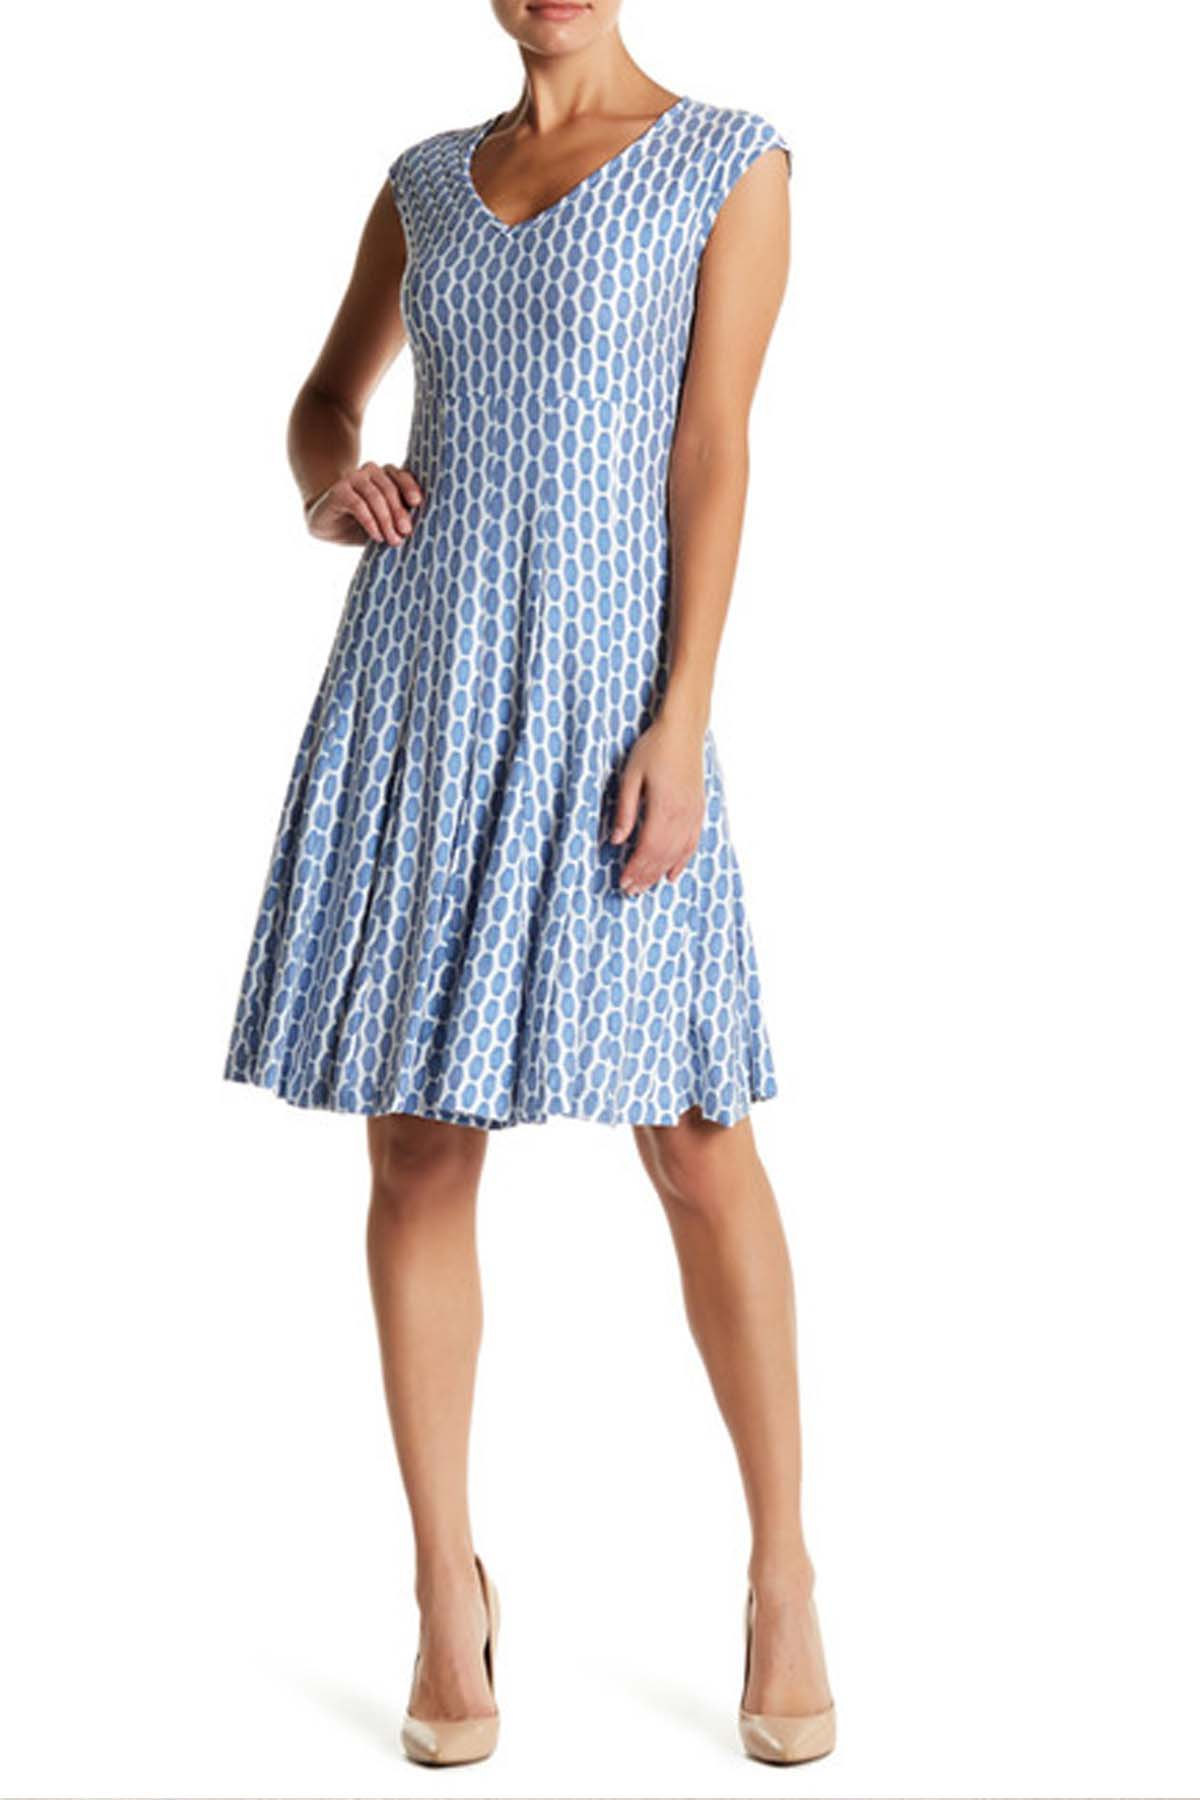 24 Cute Easter Dresses for Women - Cheap Ladies Easter ...